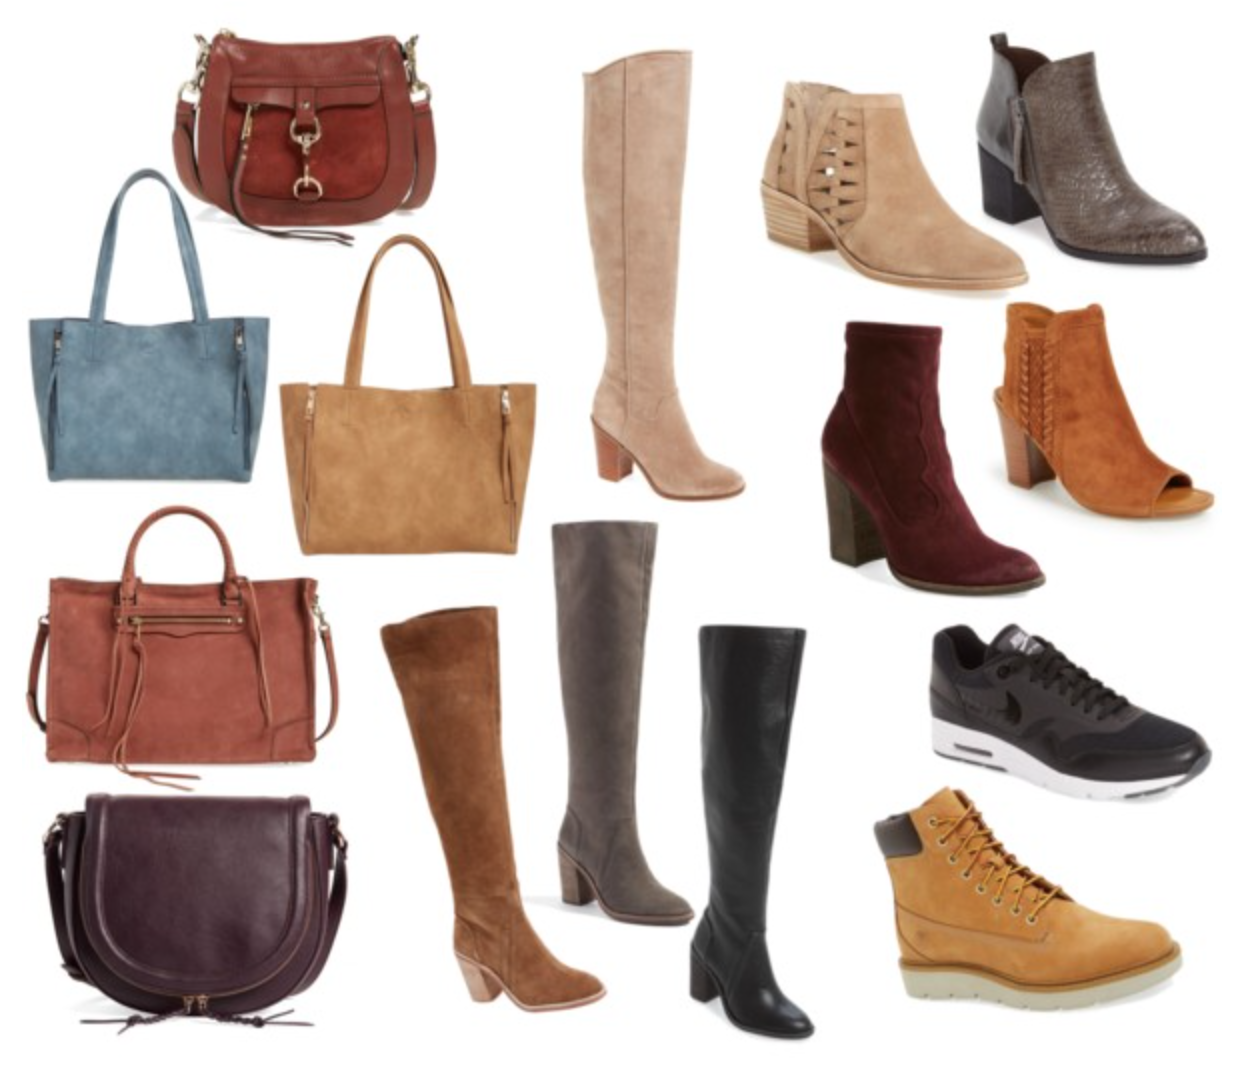 Nordstrom anniversary Sale boots and bags